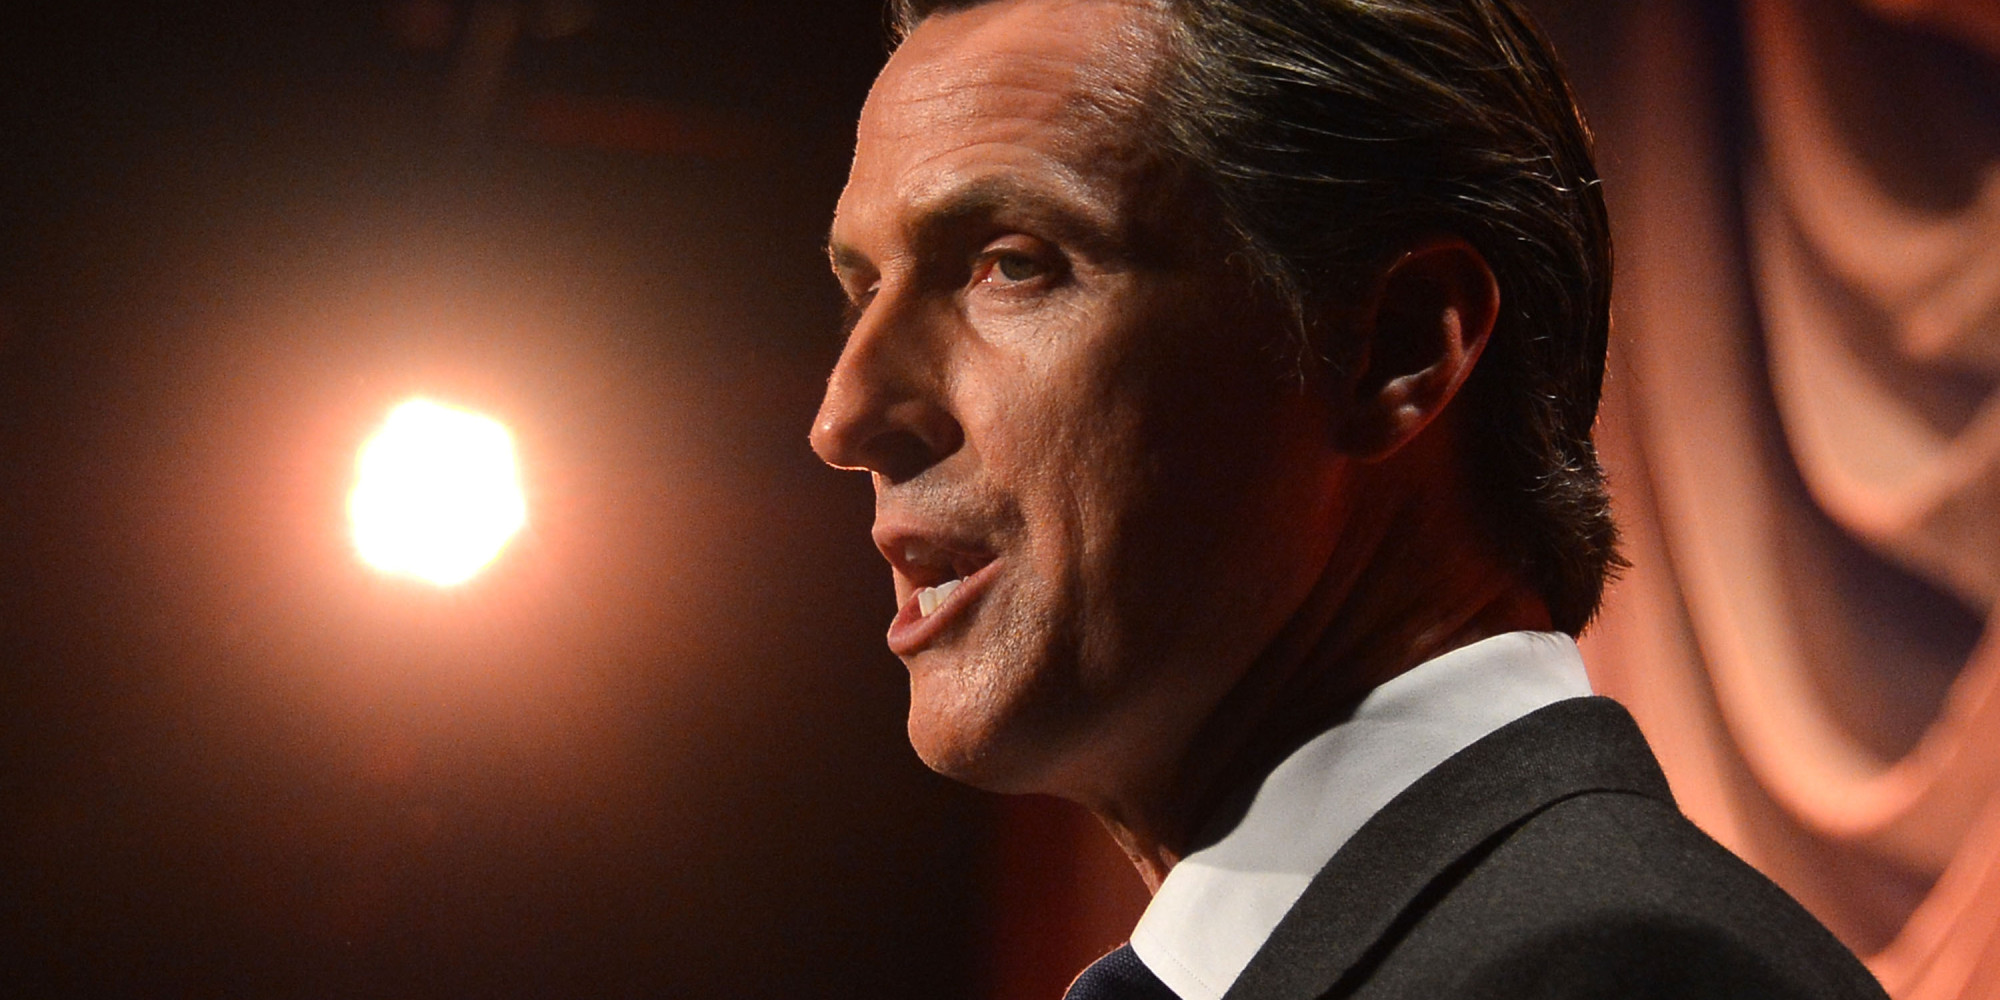 gavin newson essay Pink pistols to gavin newsom: don't take away our gun rights | the fresno who says in an essay that the lgbt feels a need to pink pistols to gavin newsom.